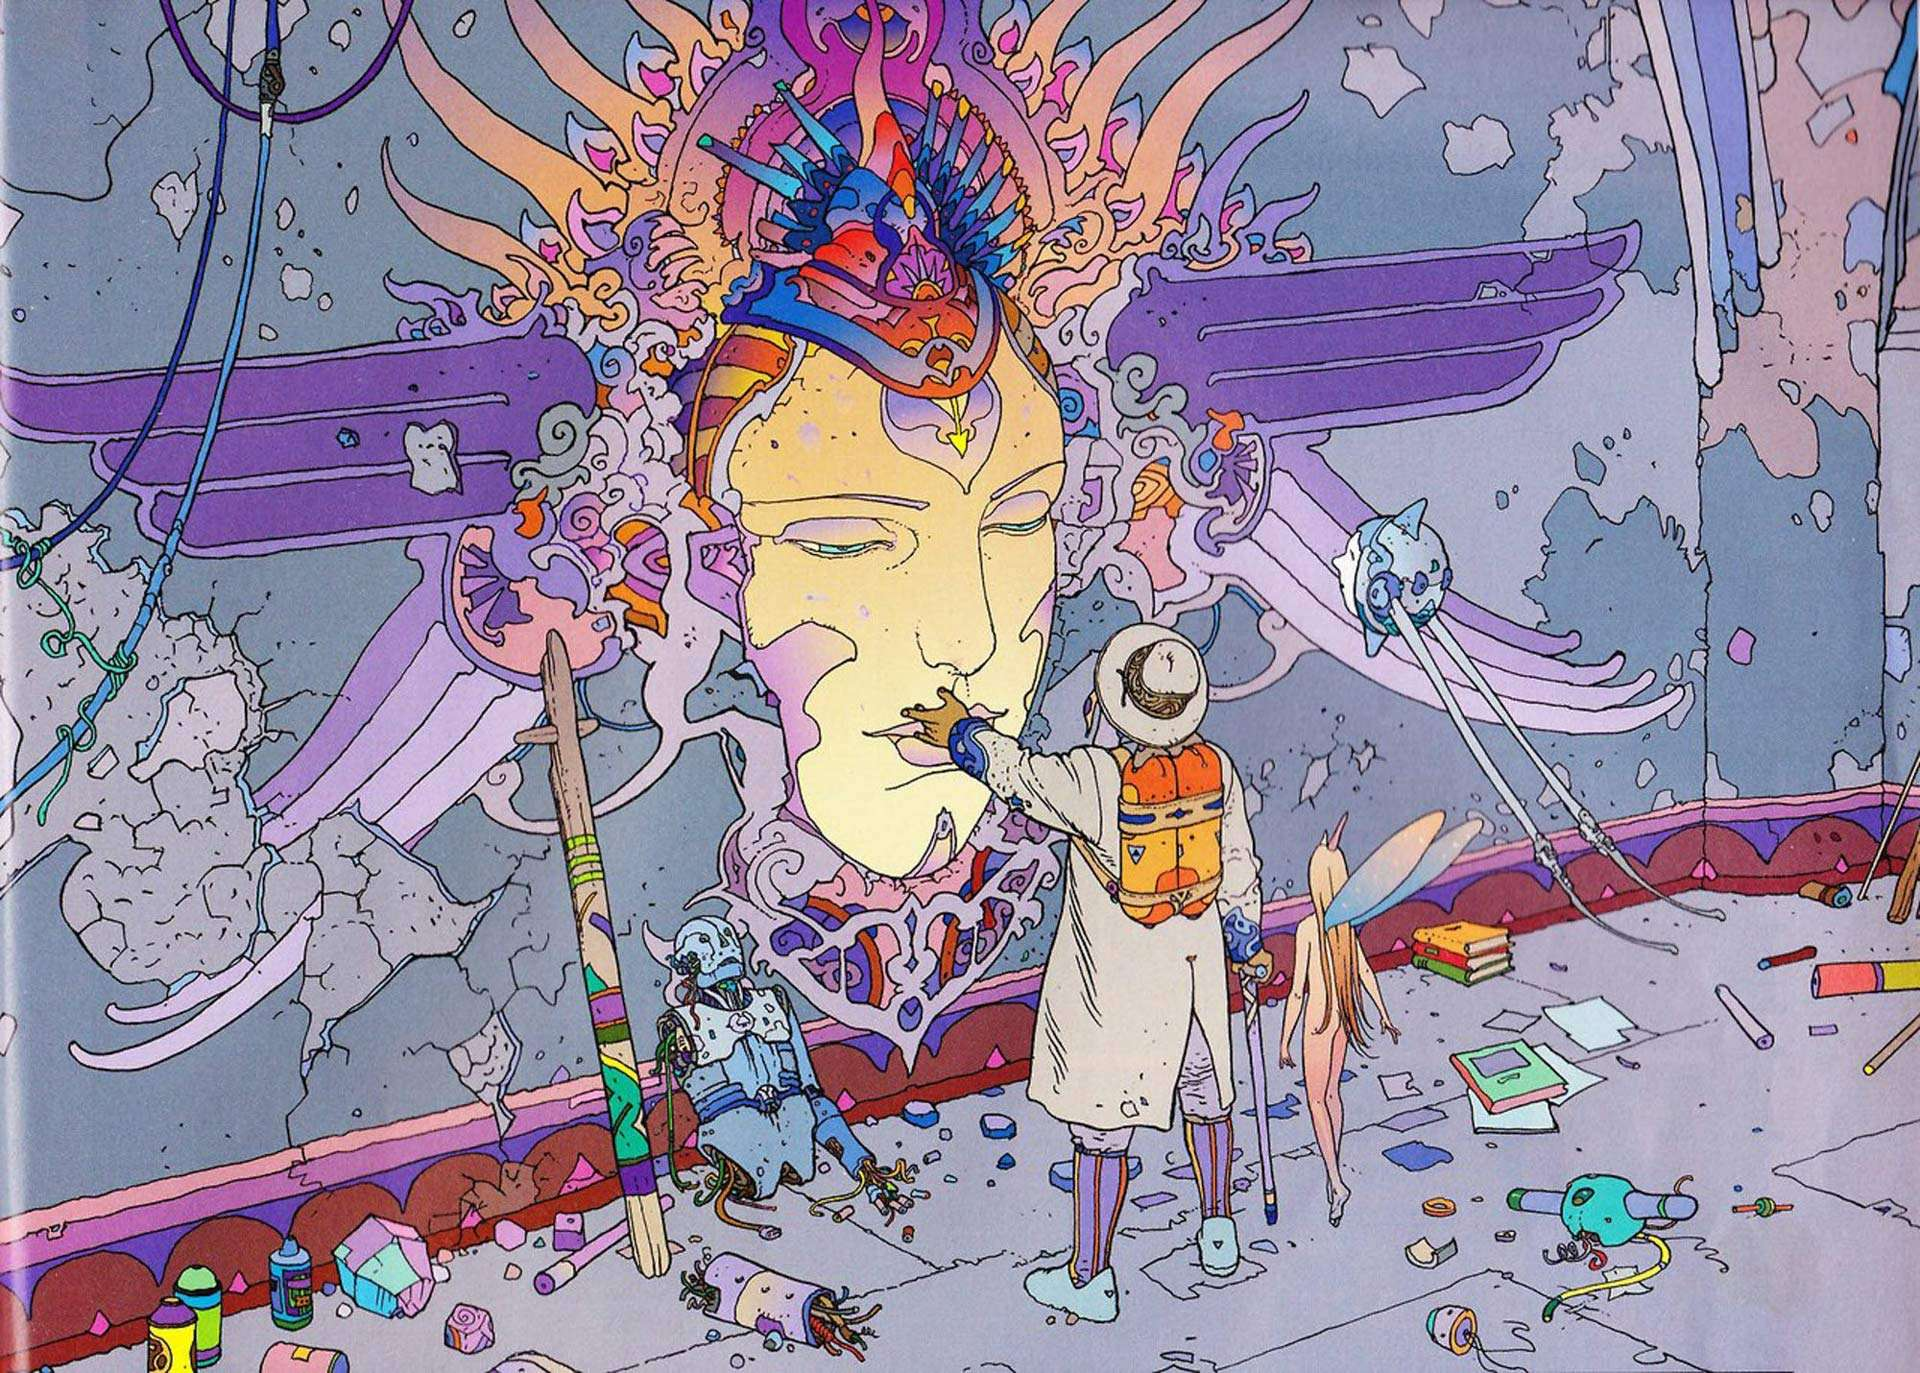 writer and illustrator Moebius aka Jean Giraud's The world of Edena